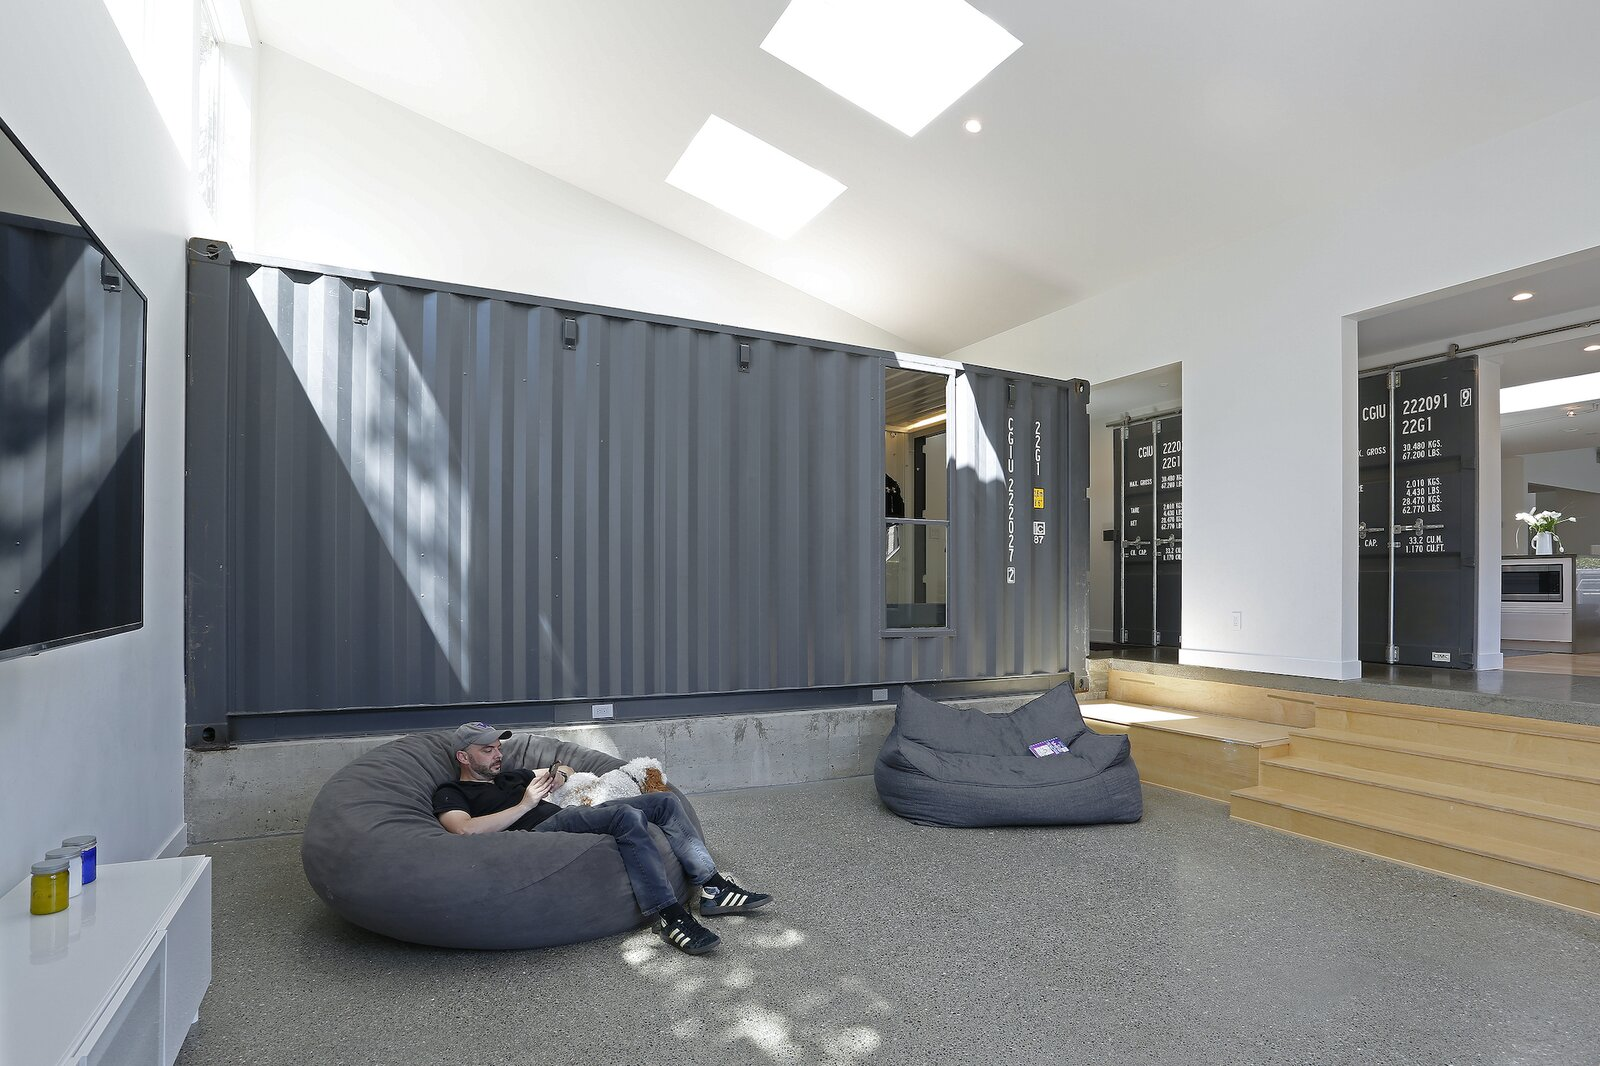 Family room of Wyss Family Container House by Paul Michael Davis Architects.